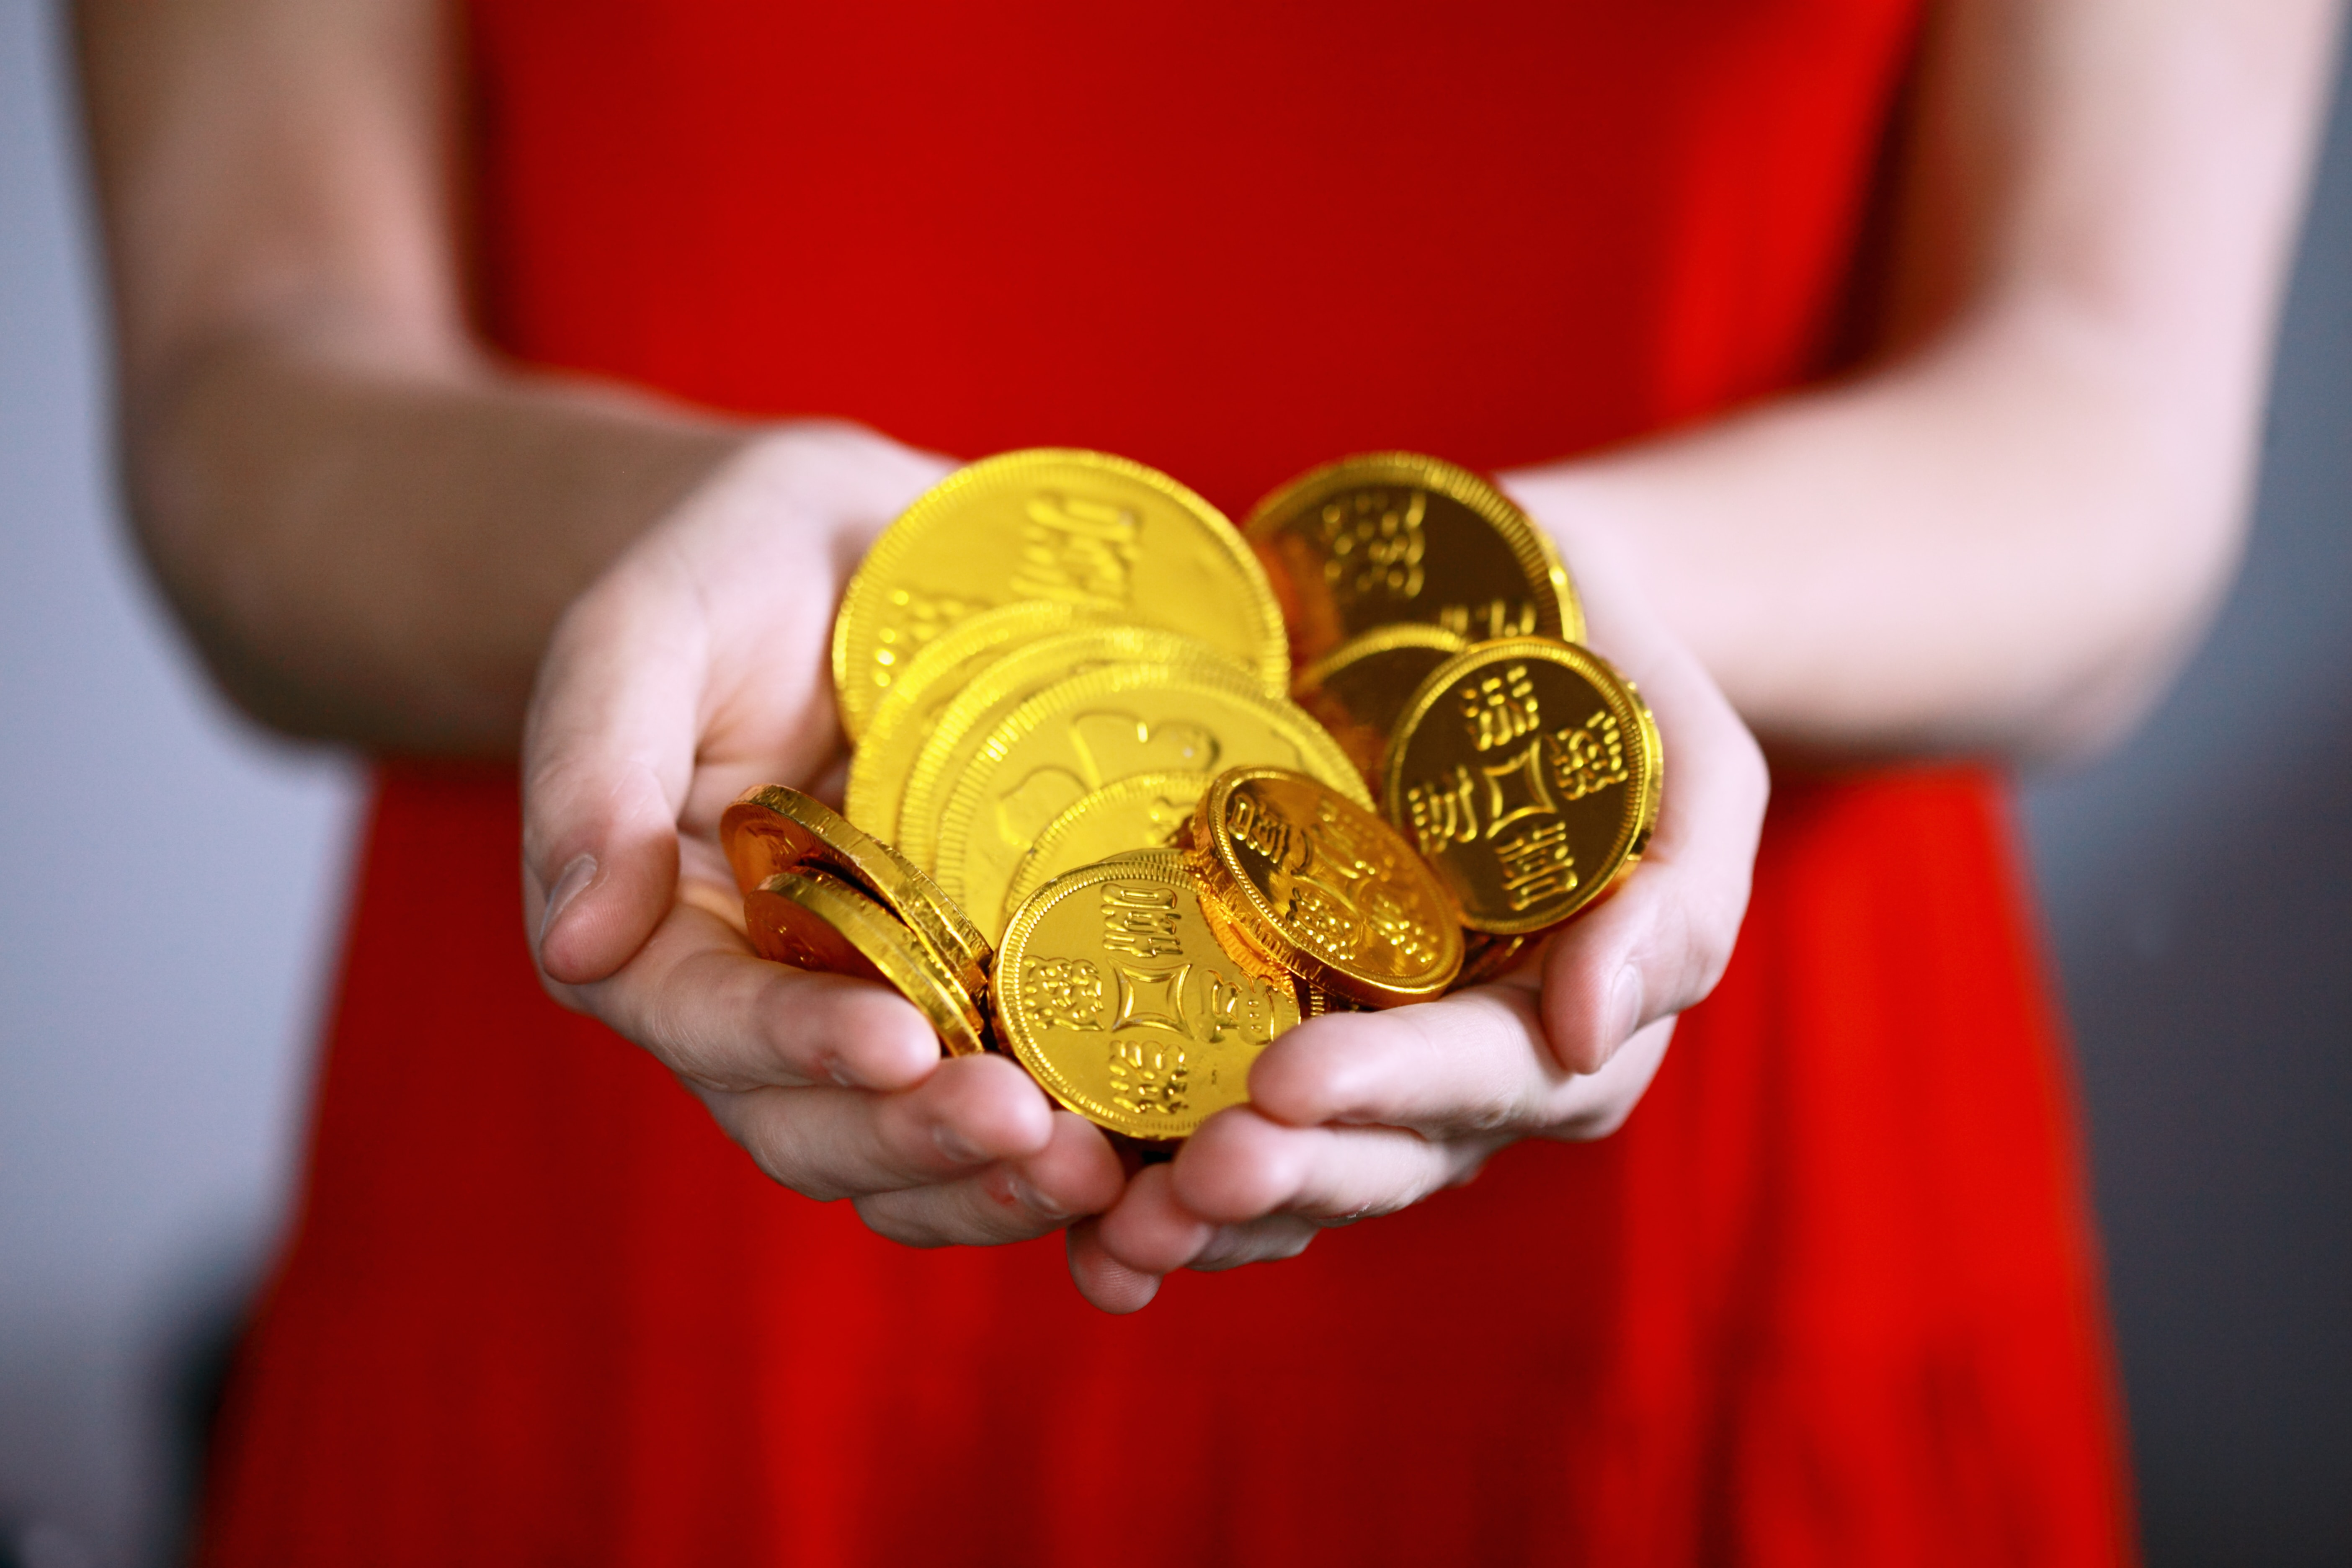 Image of woman holding gold coins